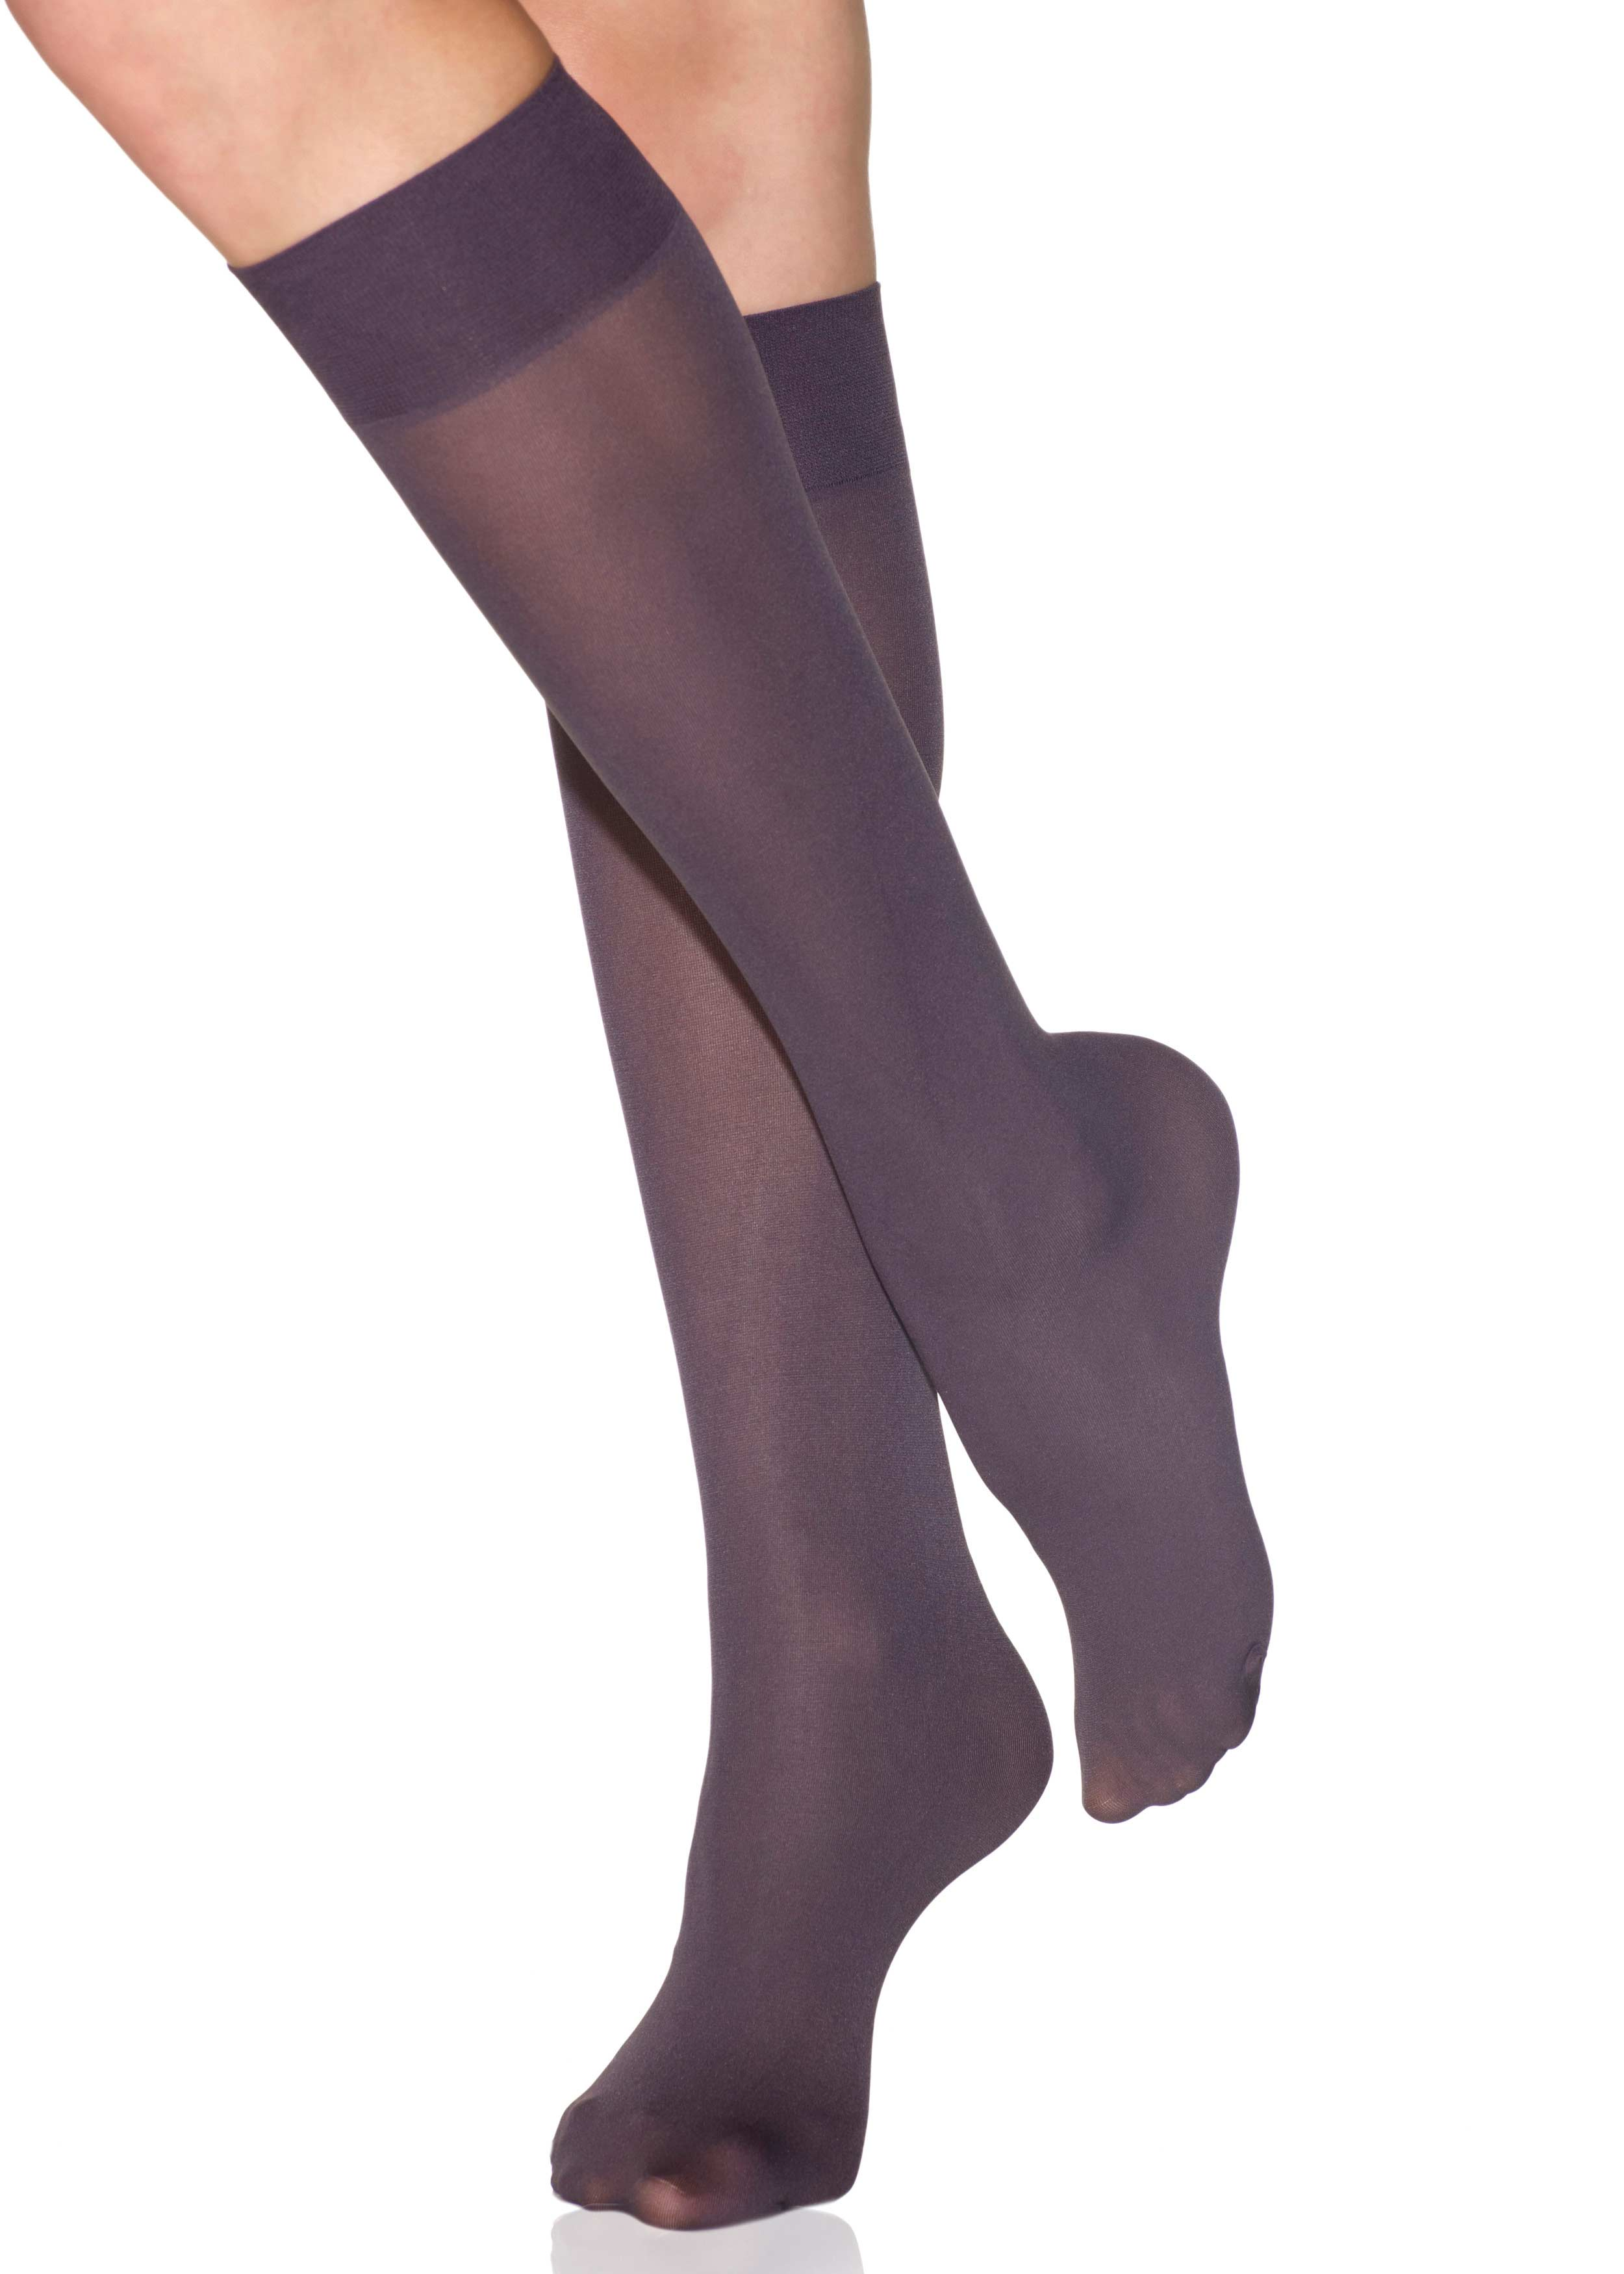 2 Pairs Perfect Socks Opaque Trouser Socks Clothing, Shoes & Accessories  Hosiery & Socks